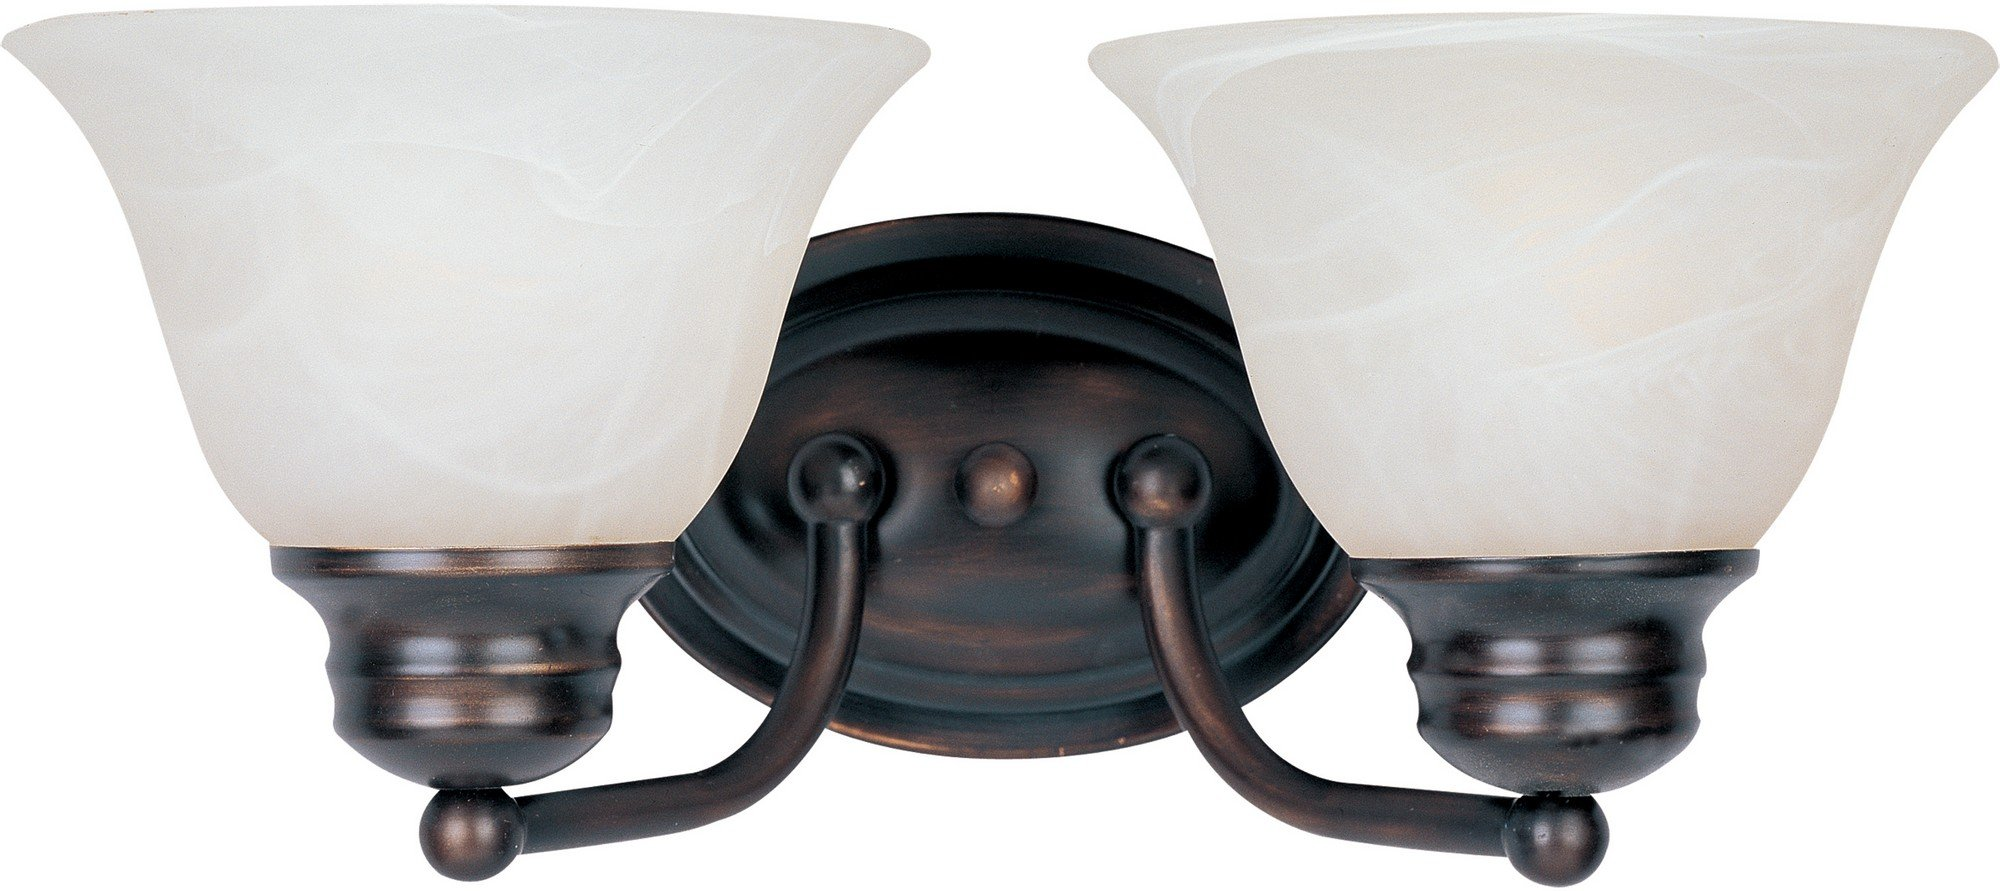 Maxim 2687MROI Malaga 2-Light Bath Vanity Wall Sconce, Oil Rubbed Bronze Finish, Marble Glass, MB Incandescent Incandescent Bulb , 60W Max., Damp Safety Rating, Standard Dimmable, Hemp String Shade Material, Rated Lumens